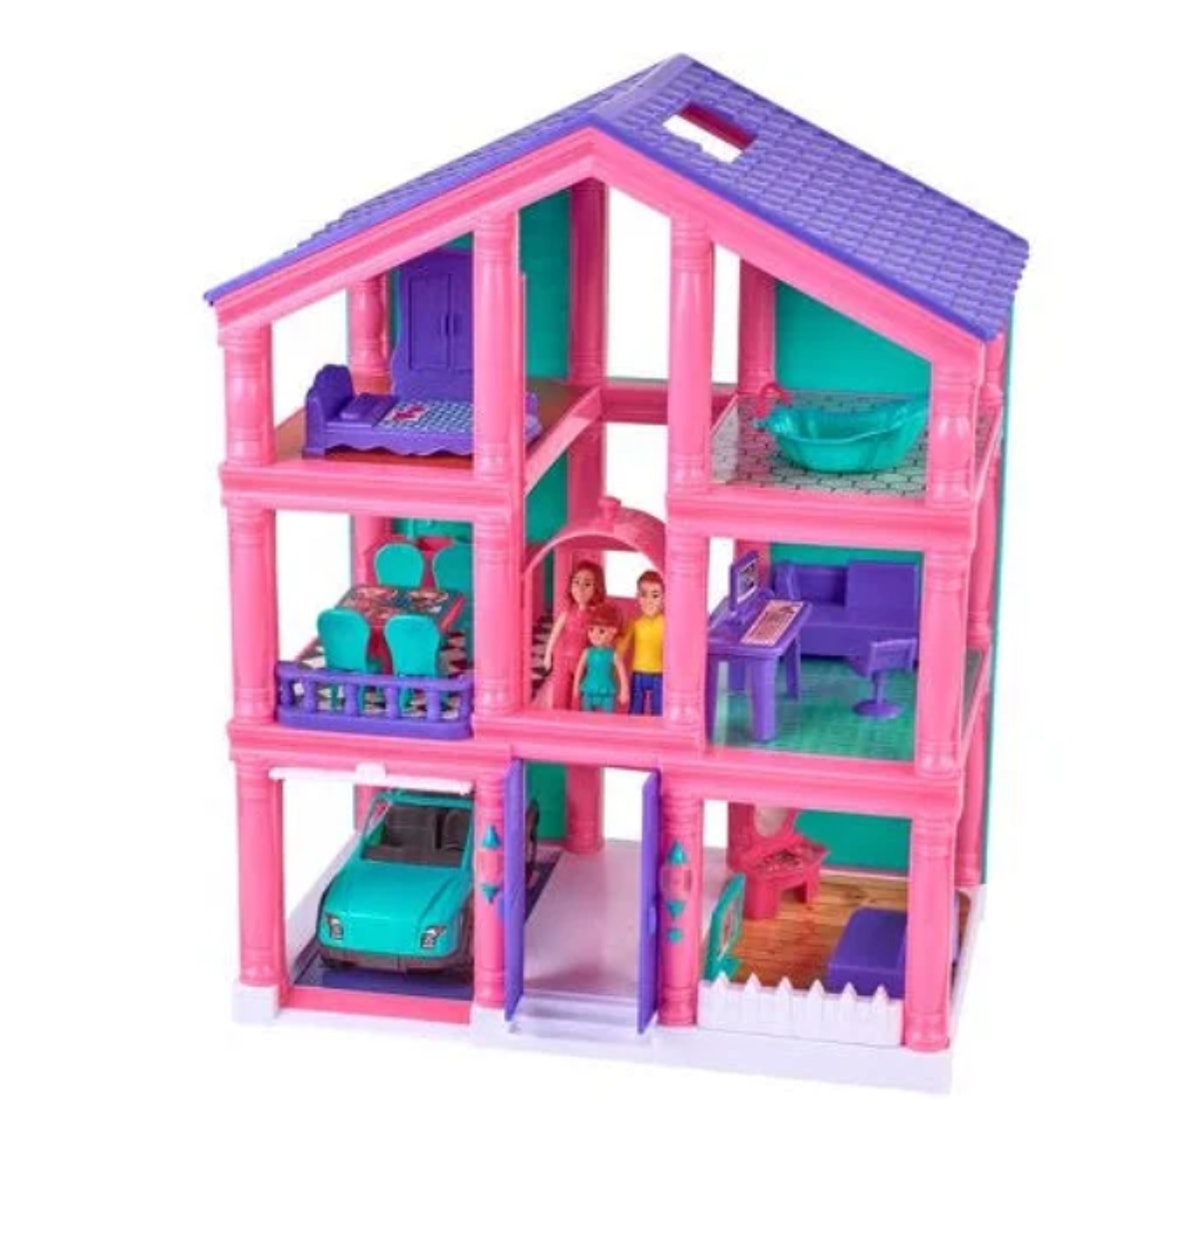 Kid Connection 3-Story Dollhouse Play Set